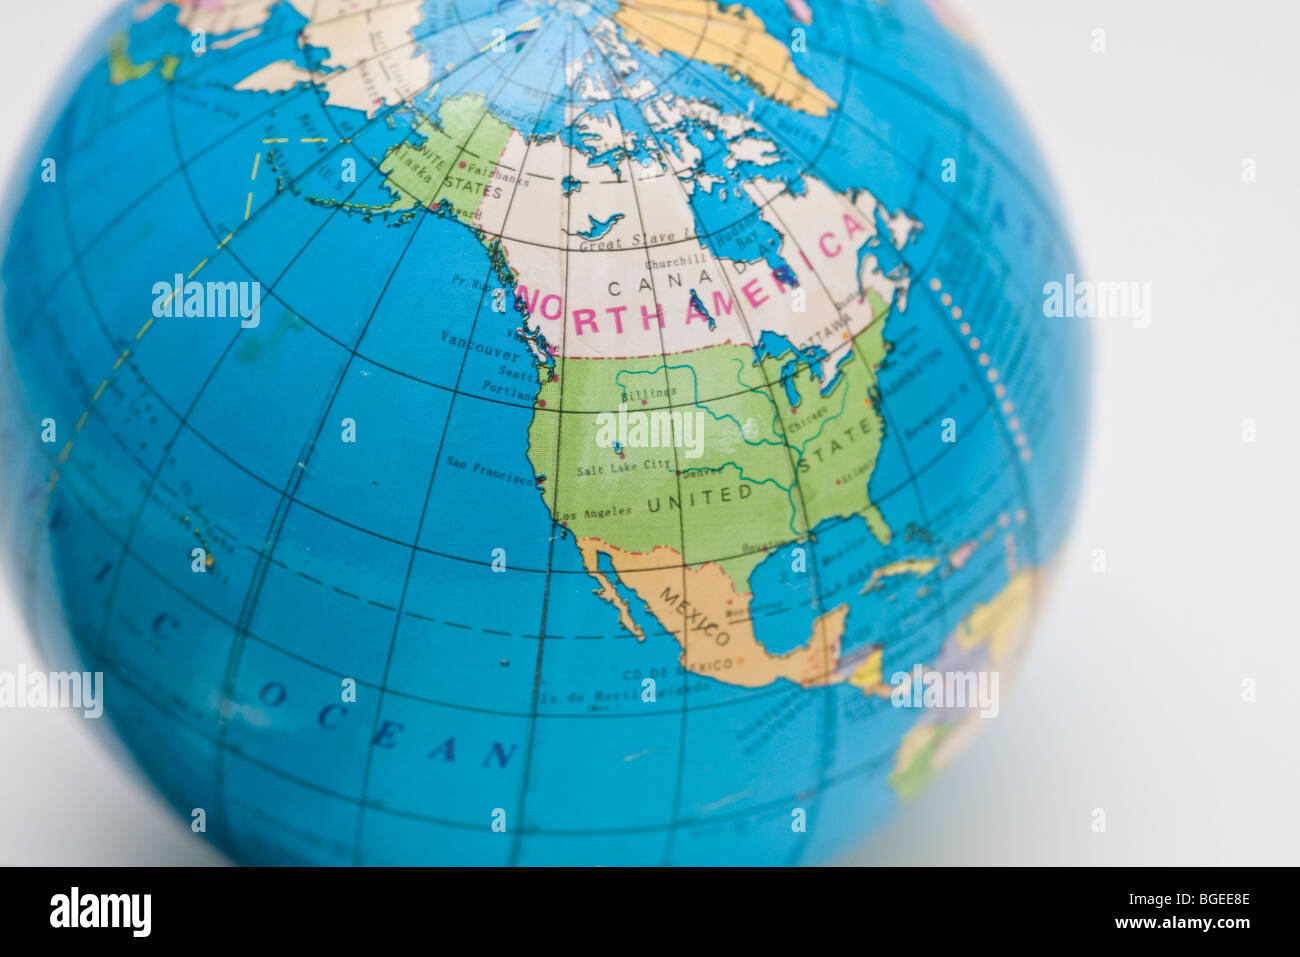 Stock Po Close Up Of A Globe Showing North America Canada And The United States